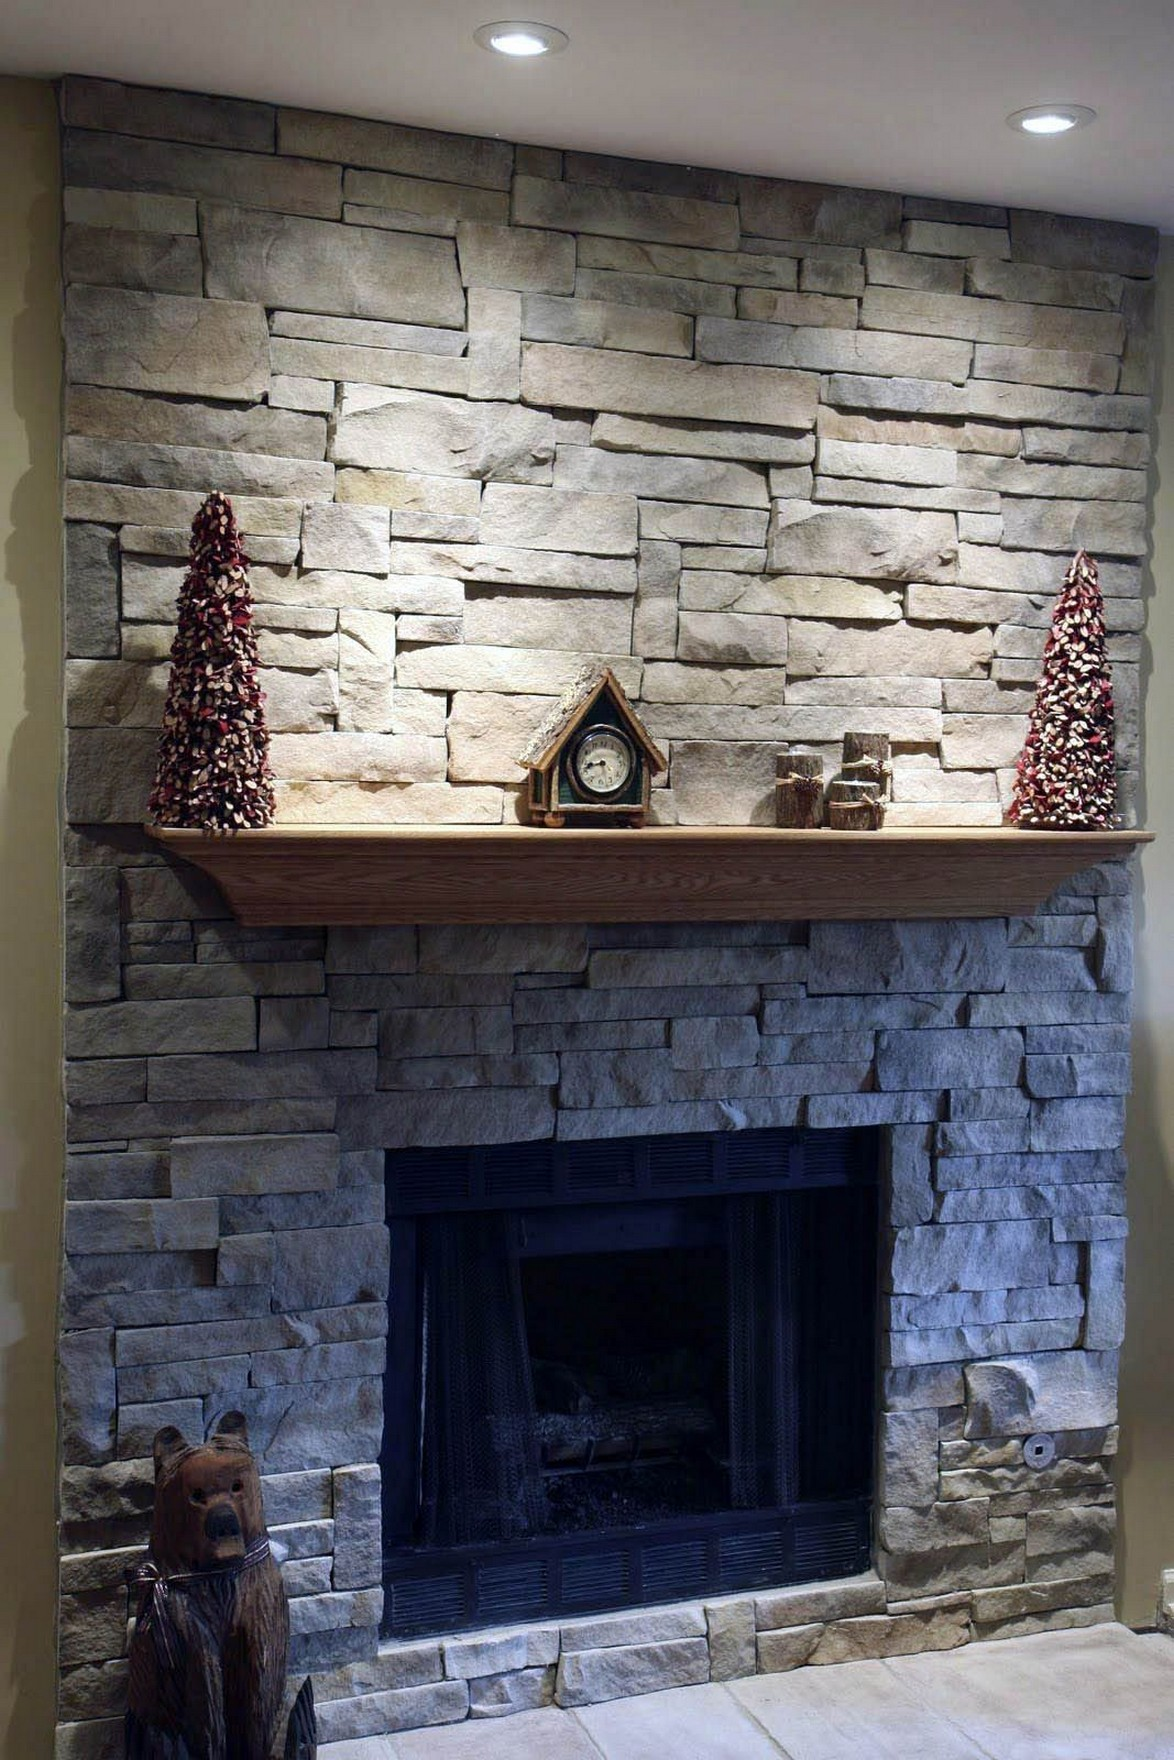 76 Stone Fireplaces The Hearth Is The Heart of The Home 7